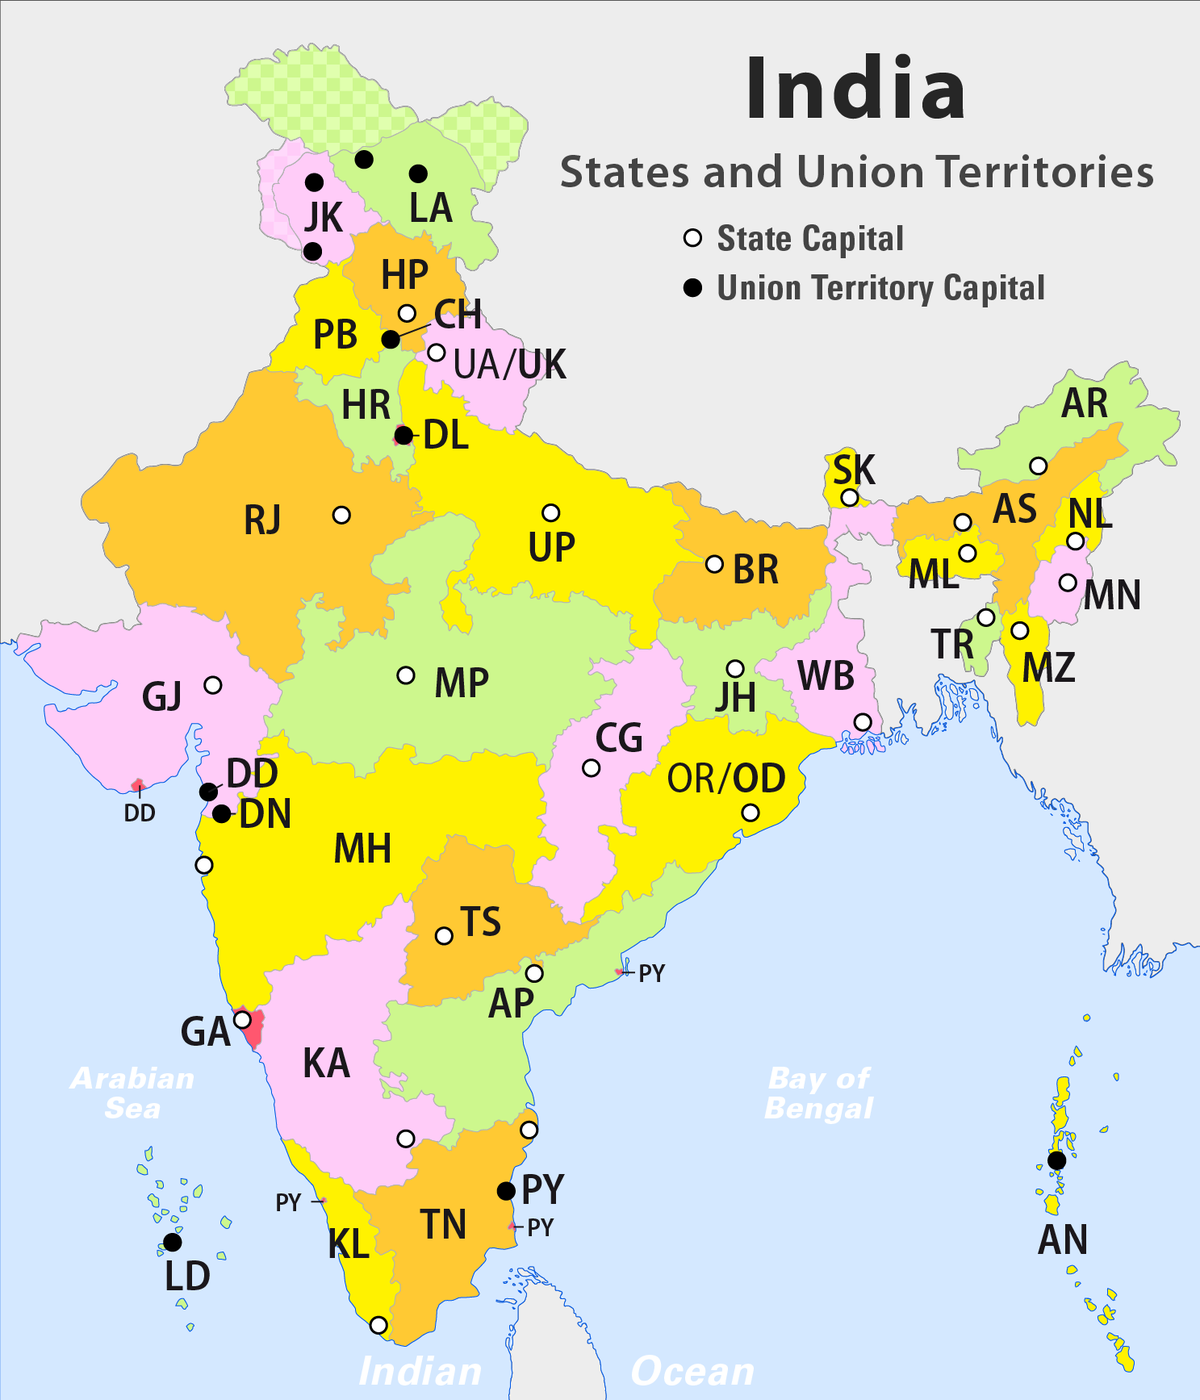 India States Map 2016.States And Territories Of India Simple English Wikipedia The Free